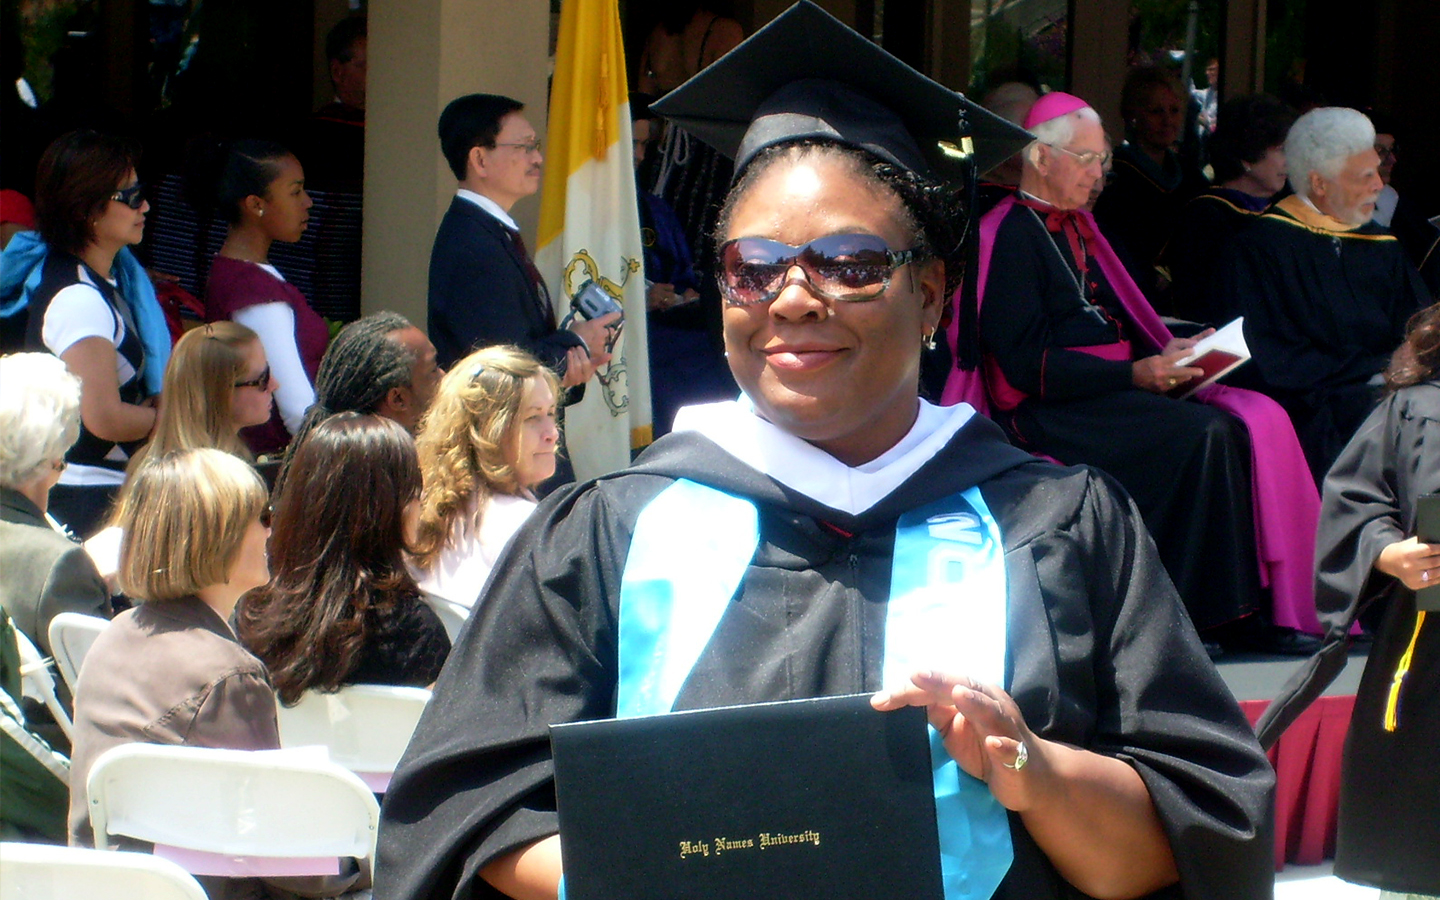 Letteria Fletcher in cap and gown on graduation day holding degree